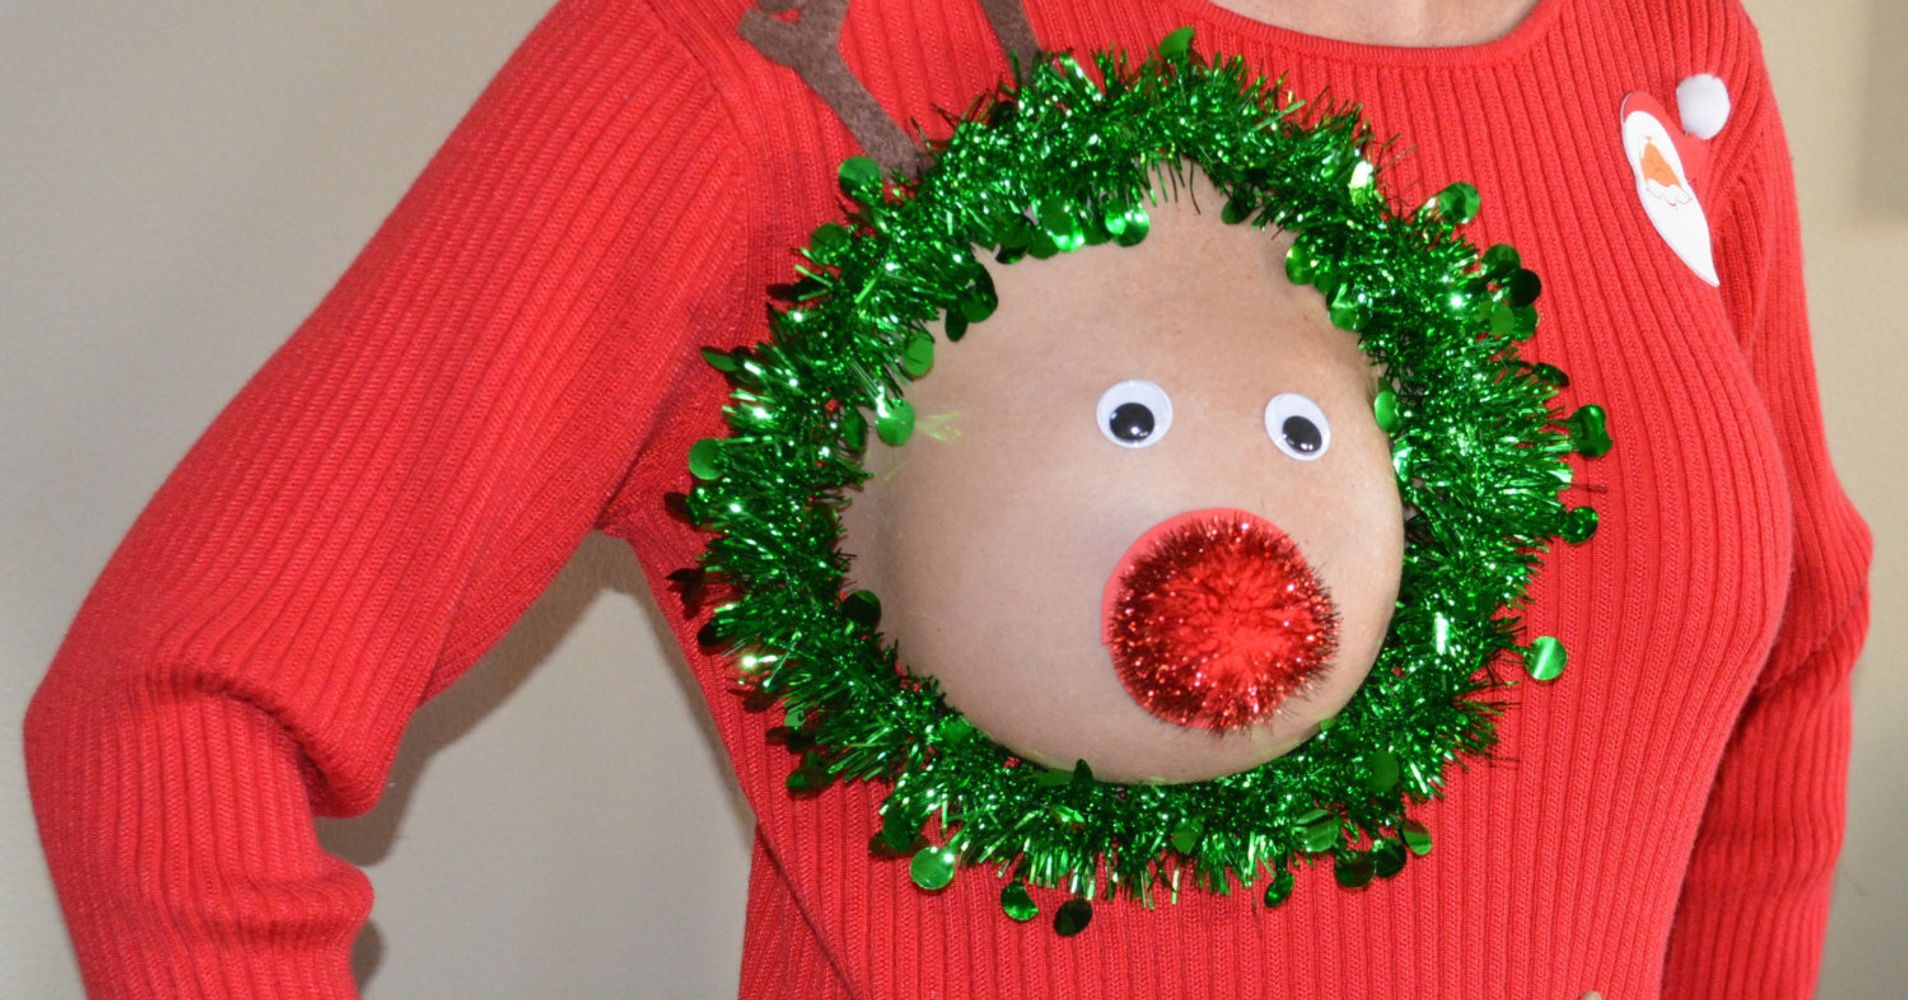 The Perfect Ugly Christmas Sweater For Breastfeeding Moms | HuffPost ...